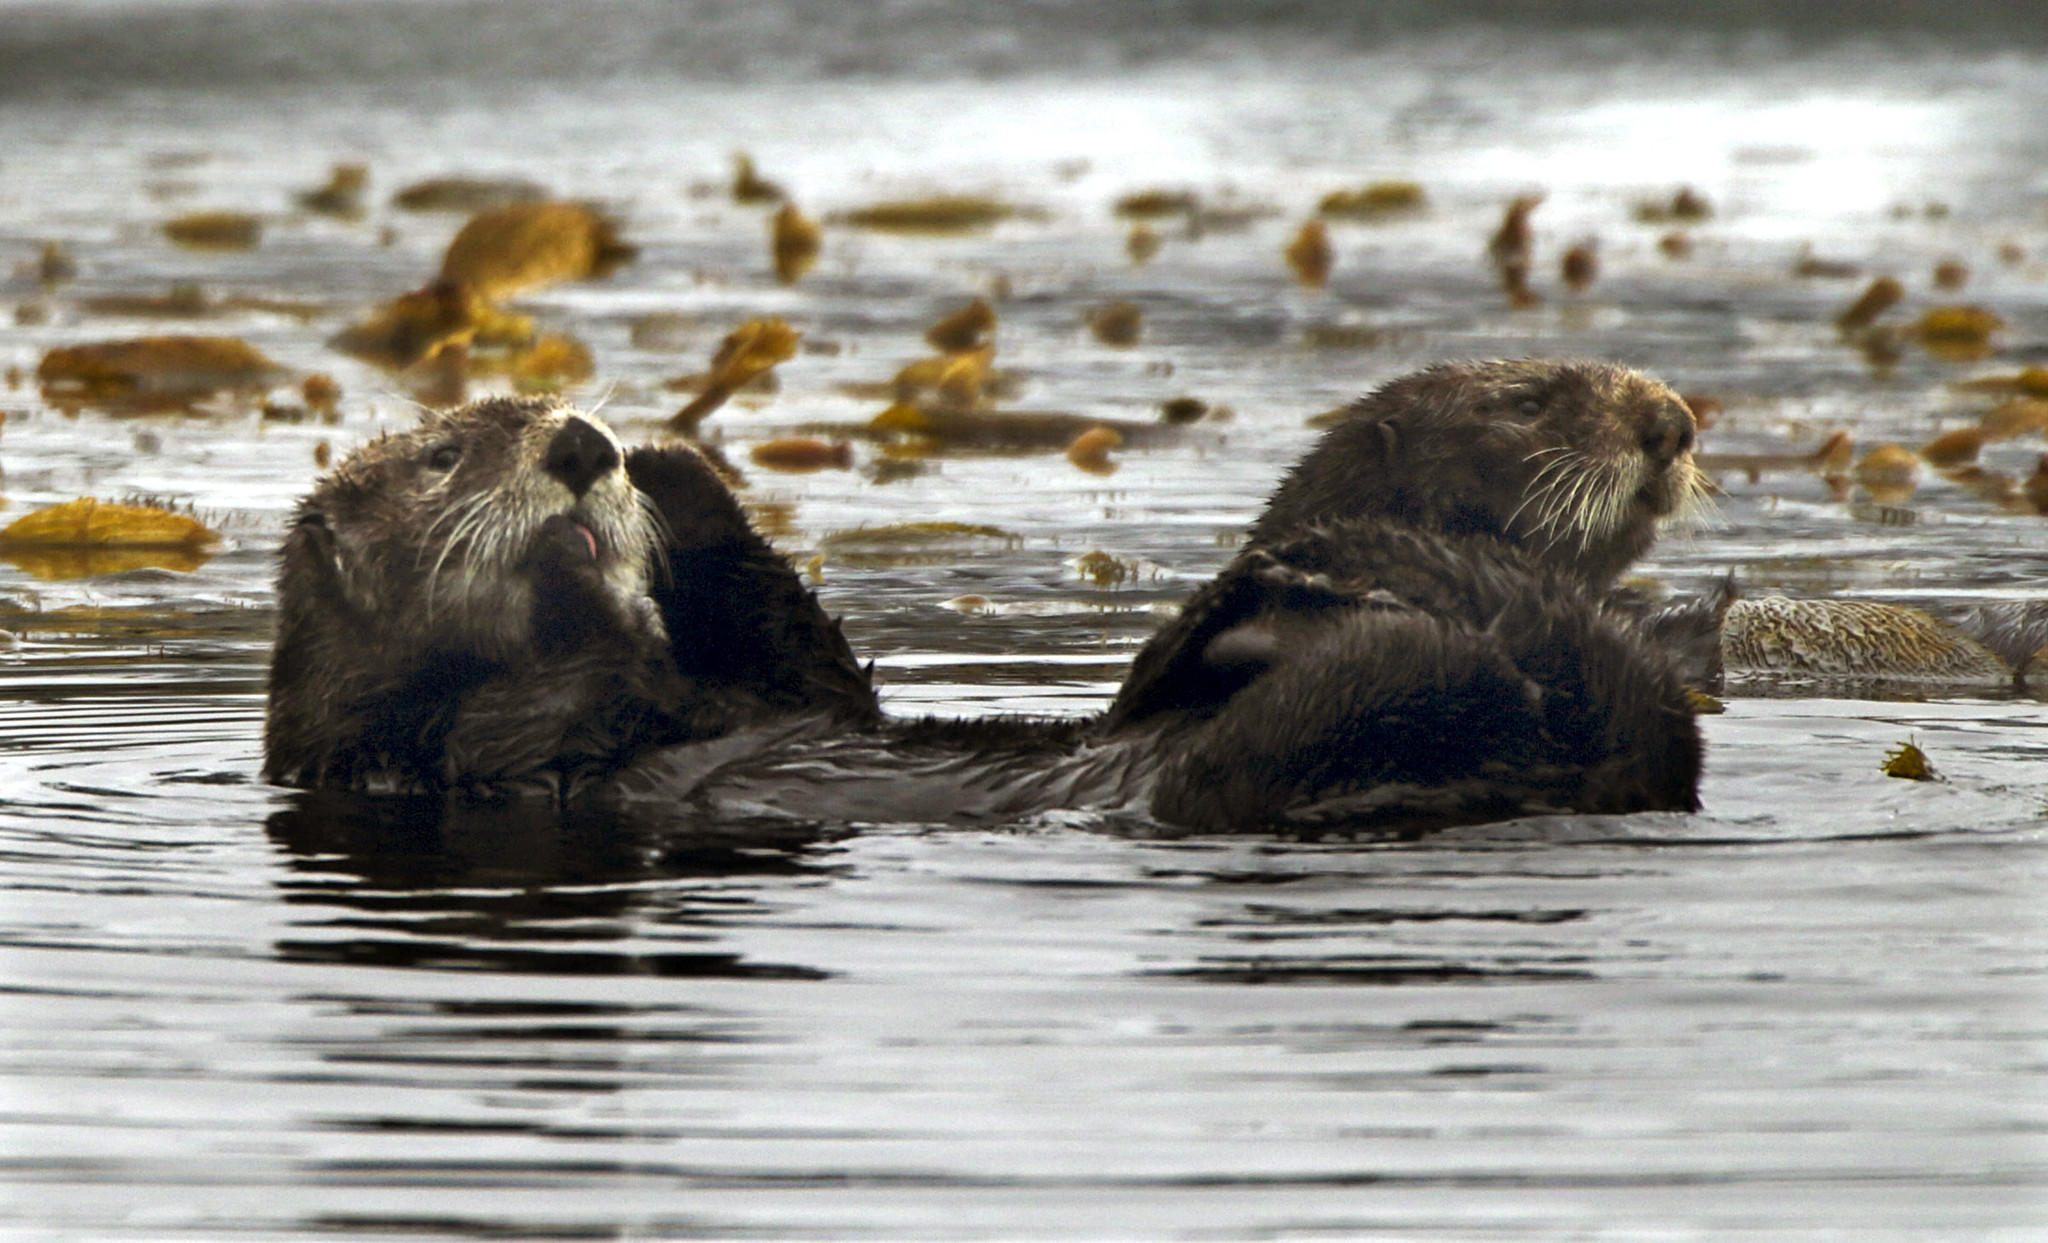 A pair of sea otters float around Monterey Bay last April. A $21,000 reward is being offered to find the person responsible for the shooting deaths of three California sea otters found last fall on a beach on the Monterey Peninsula.